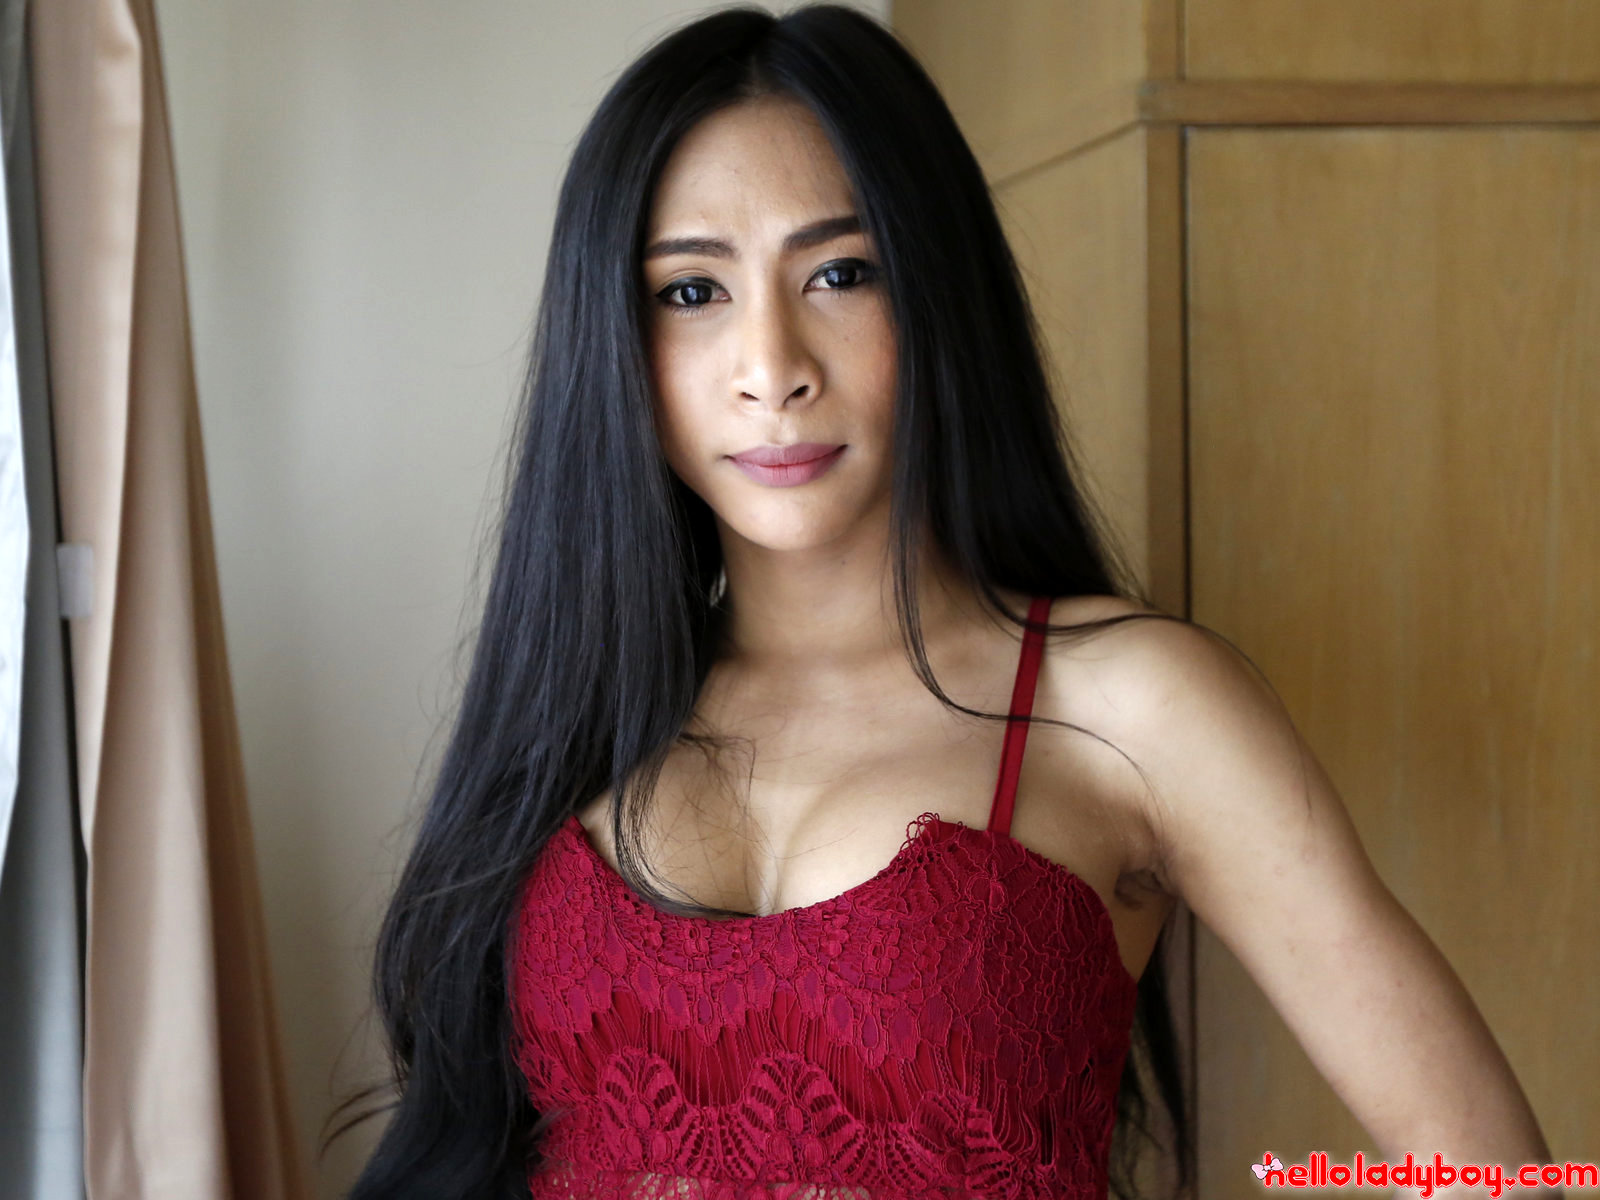 25 Year Old Shy Asian Tgirl Sucks Off White Dick And Gets A Facial